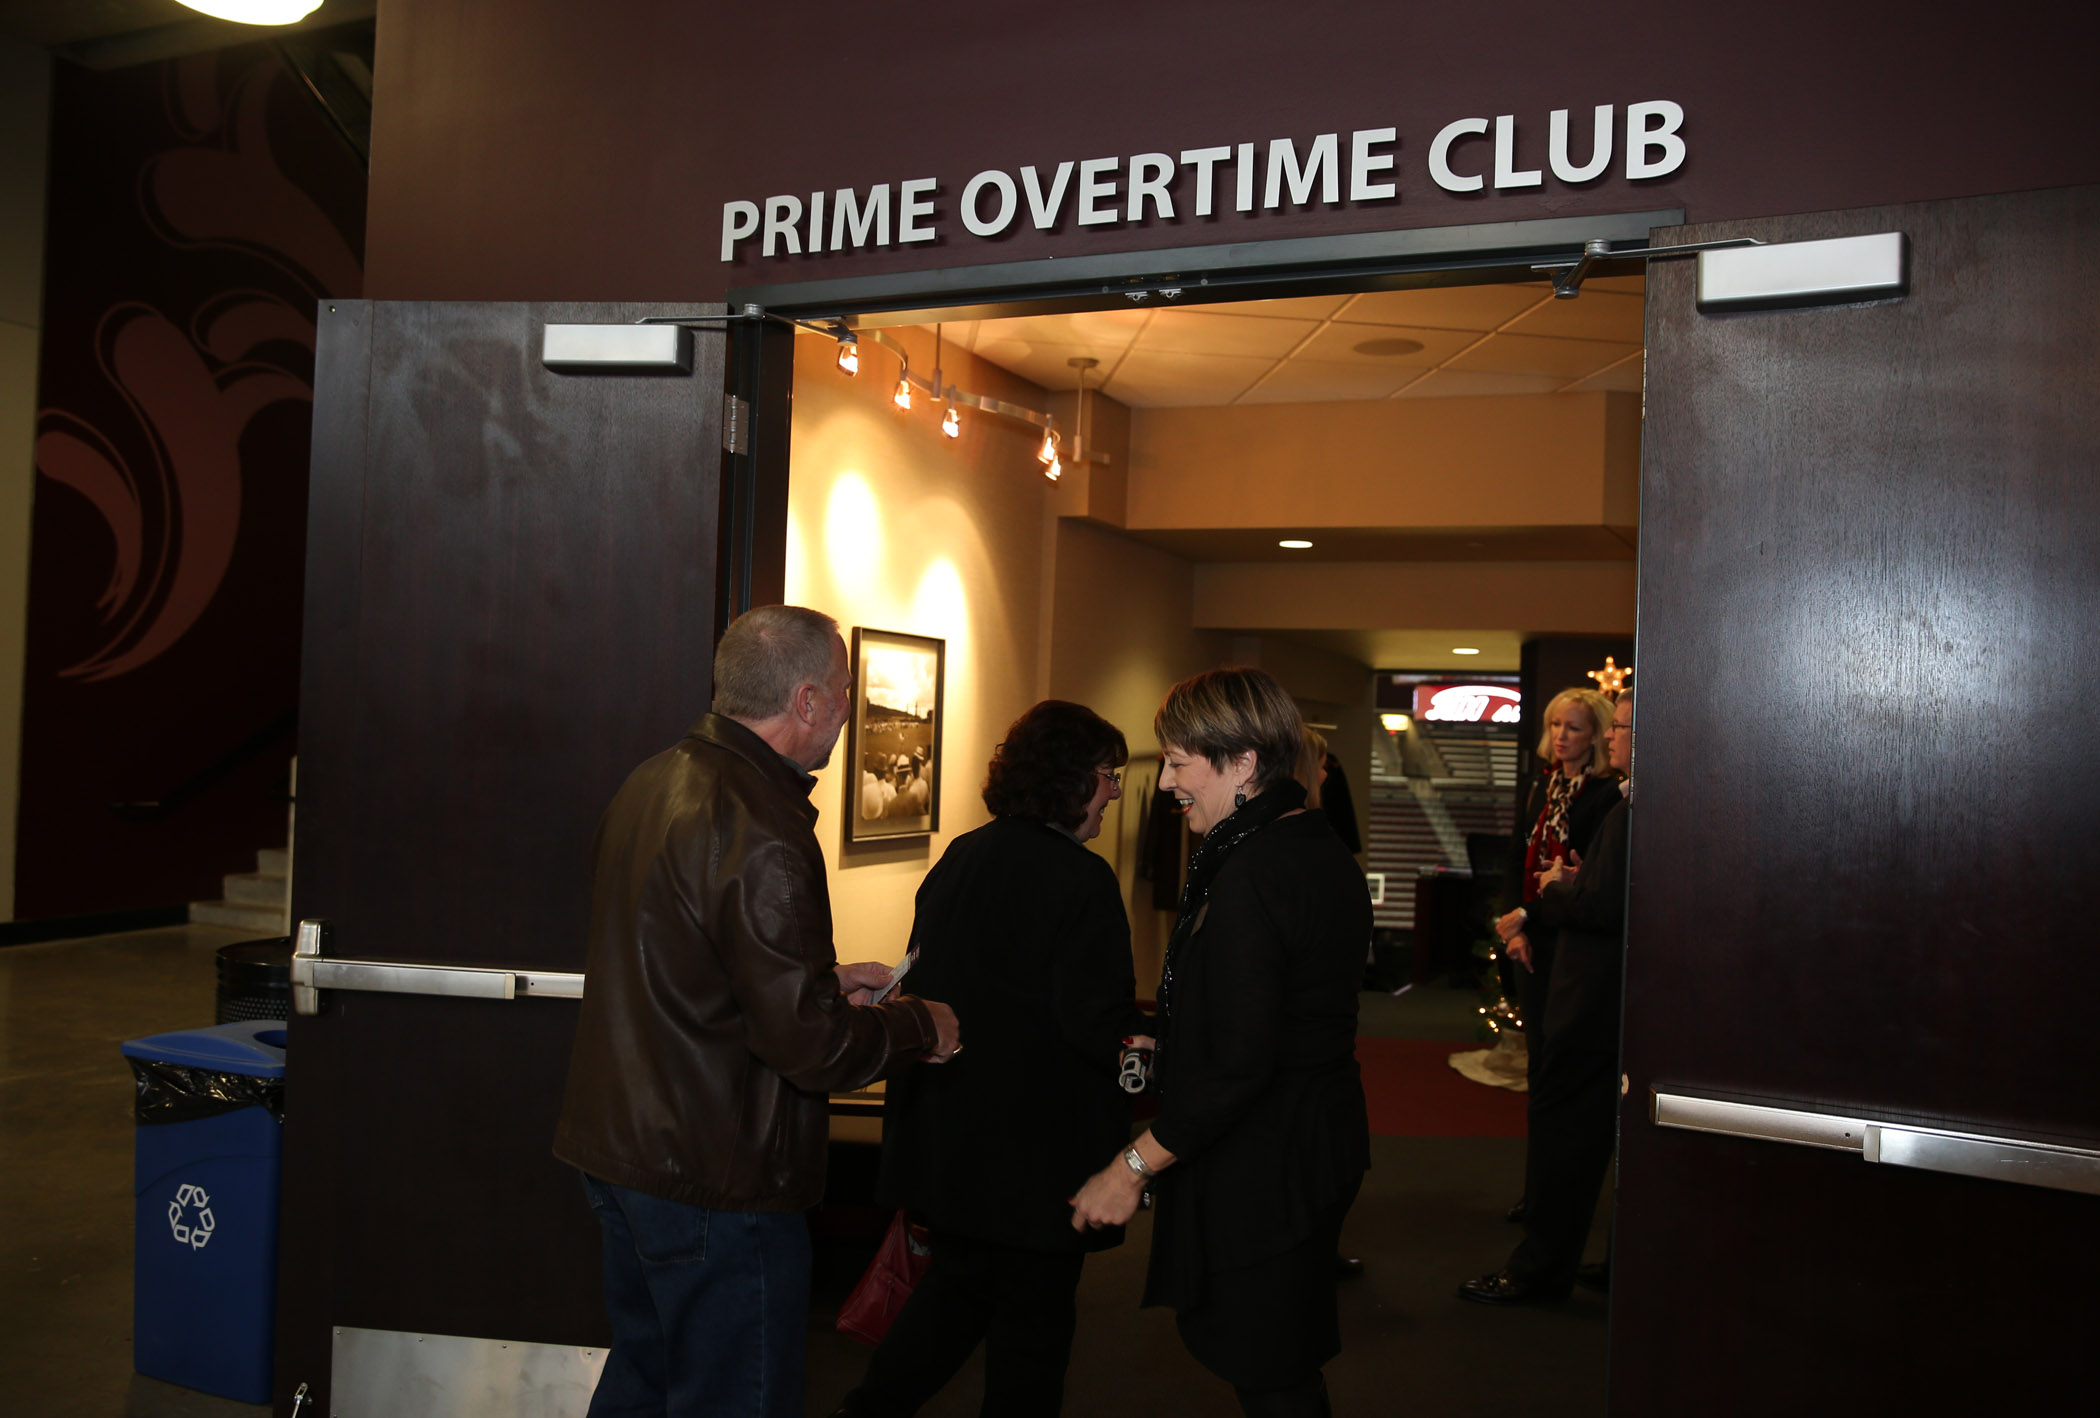 Basketball Prime Overtime Club Buffet Menu – November 1, 5, 6